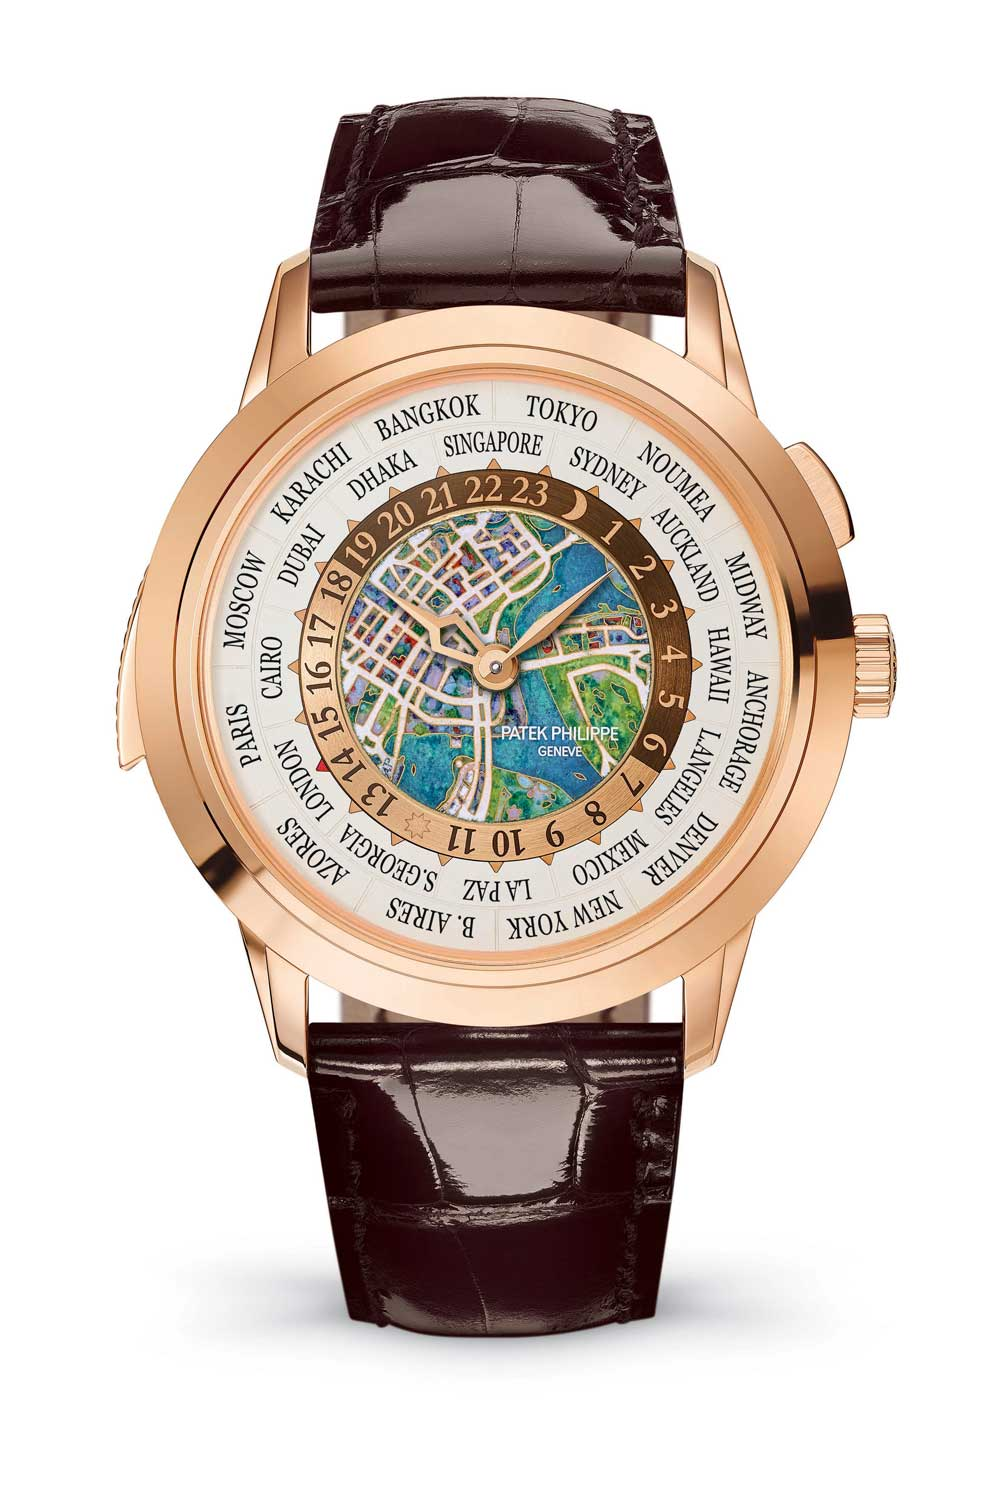 Ref. 5531 – World Time Minute Repeater Singapore 2019 Special Edition. An exclusive version with a map of Singapore in cloisonné enamel. Limited to 5 pieces.